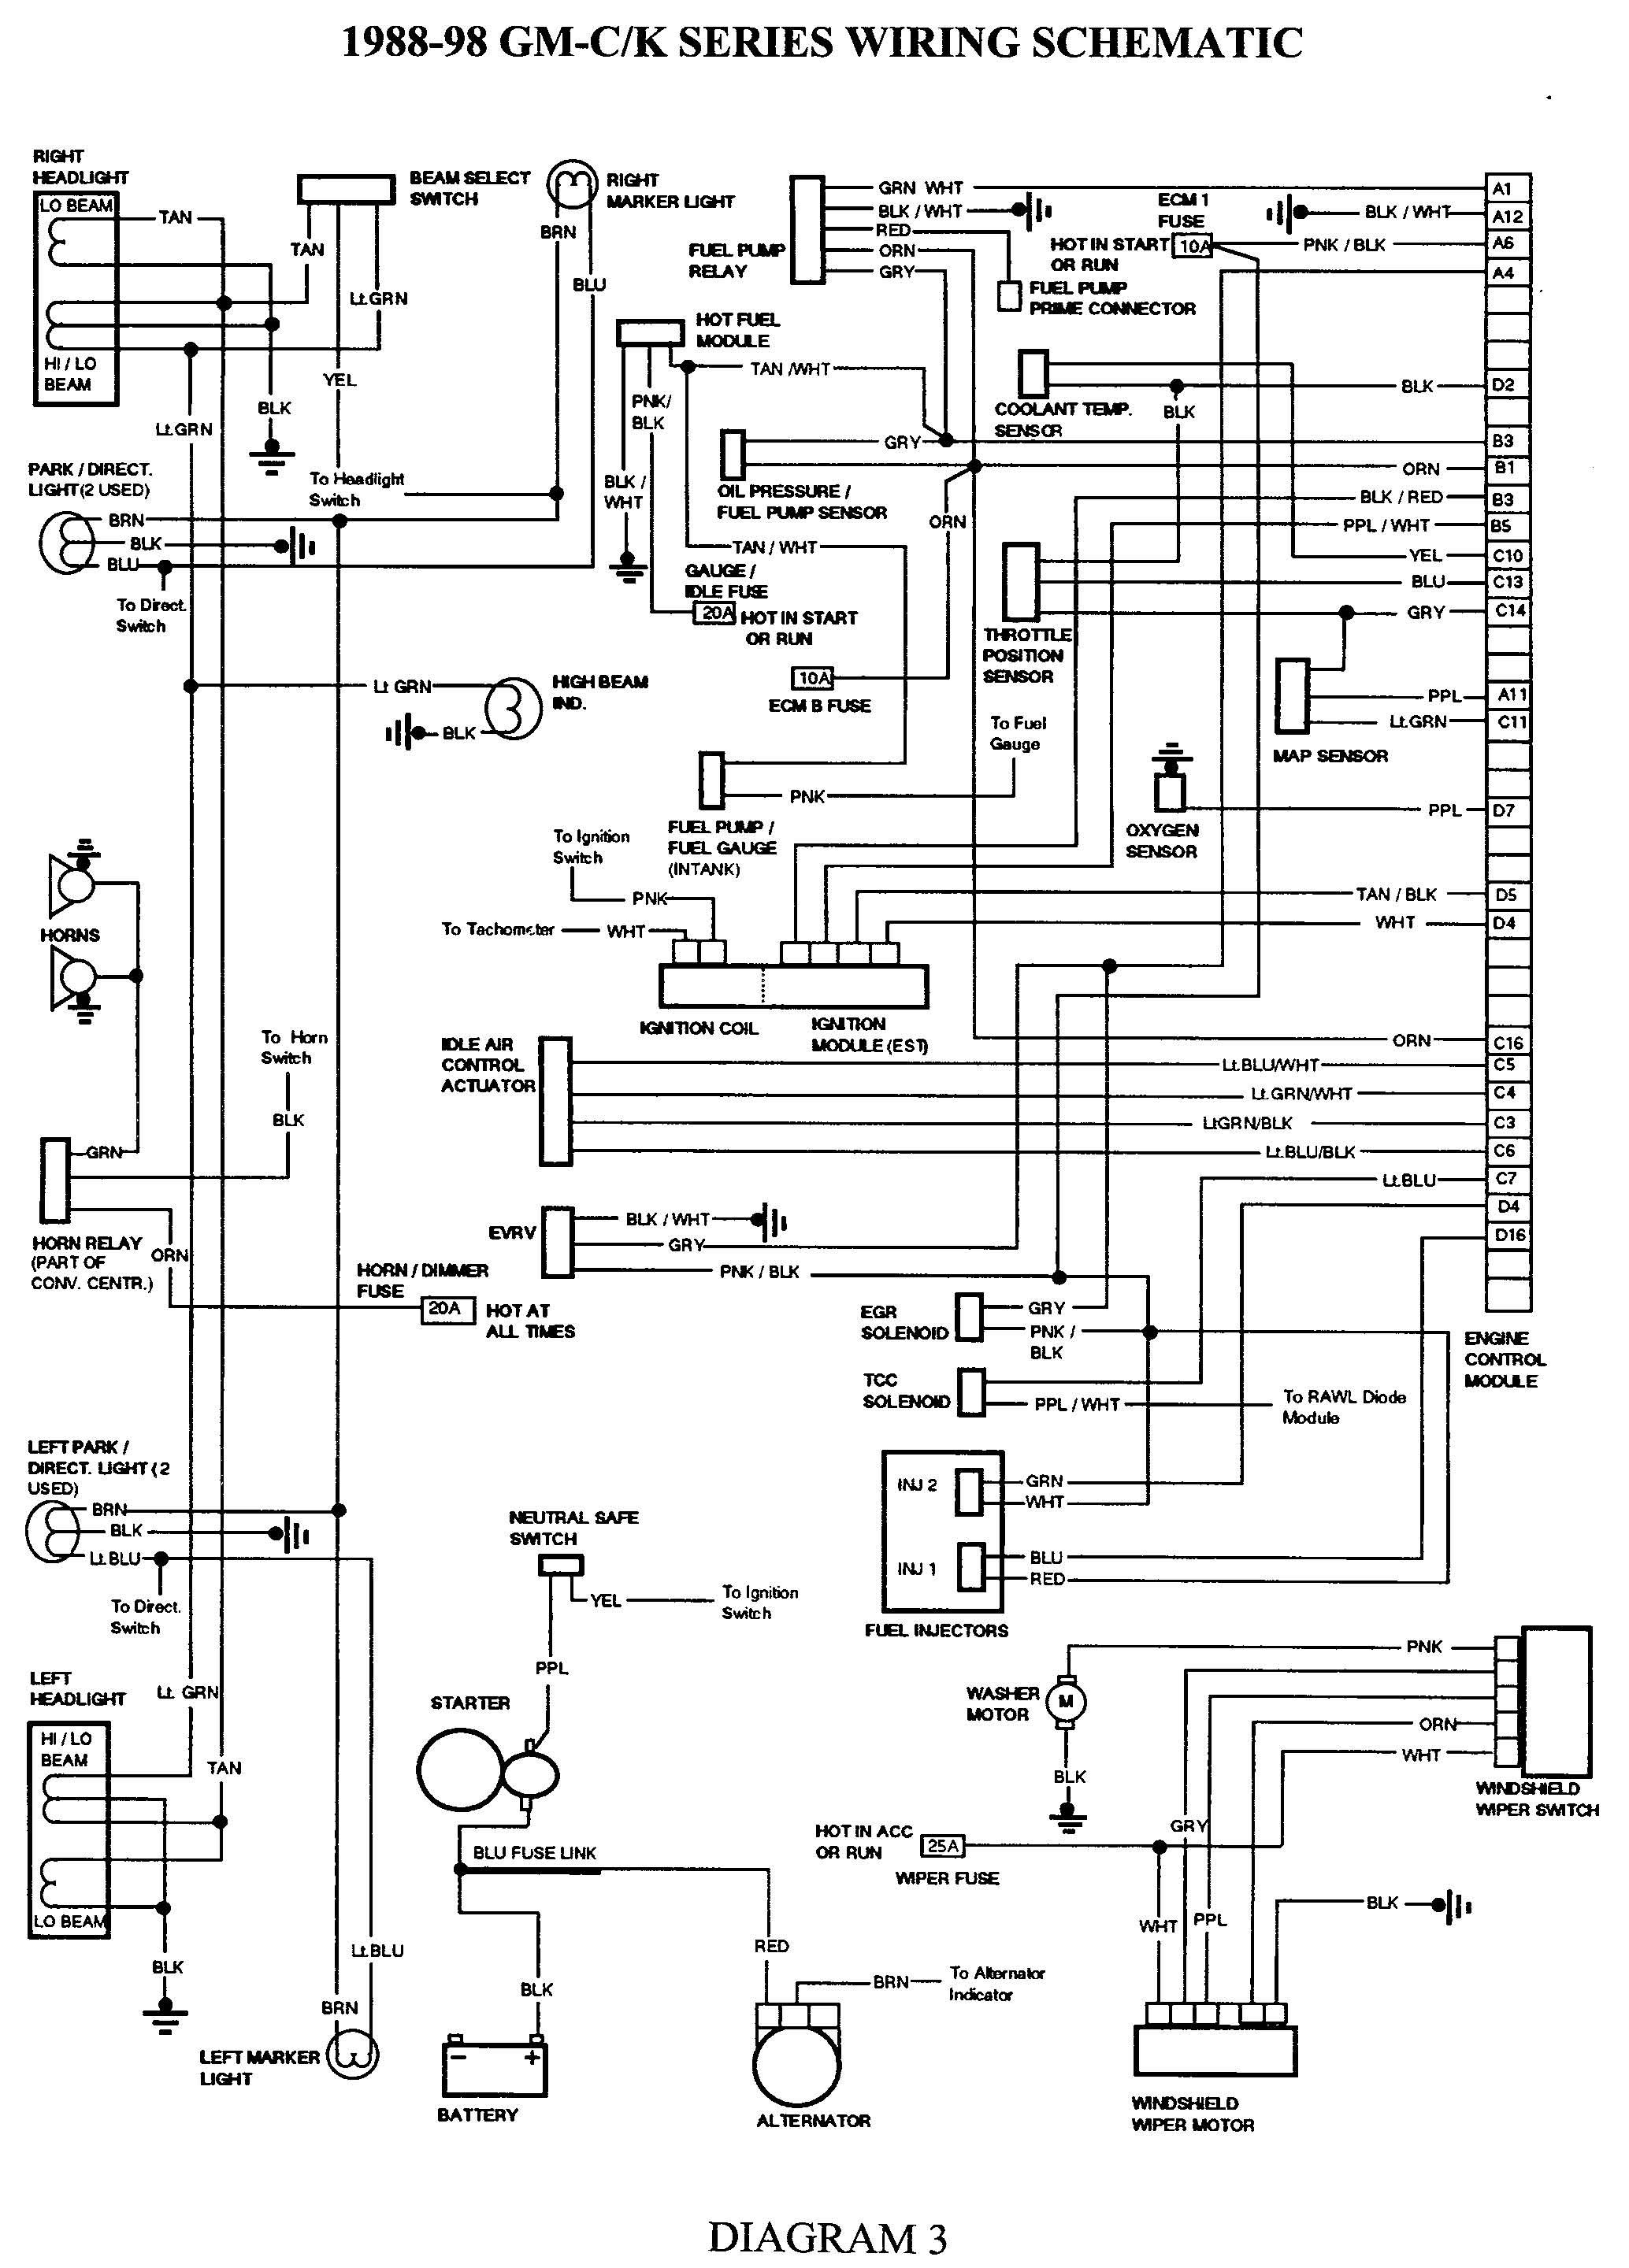 1967 cadillac wiring diagram detailed schematics diagram rh jvpacks com 2004 cadillac deville fuse diagram 2007 [ 2068 x 2880 Pixel ]